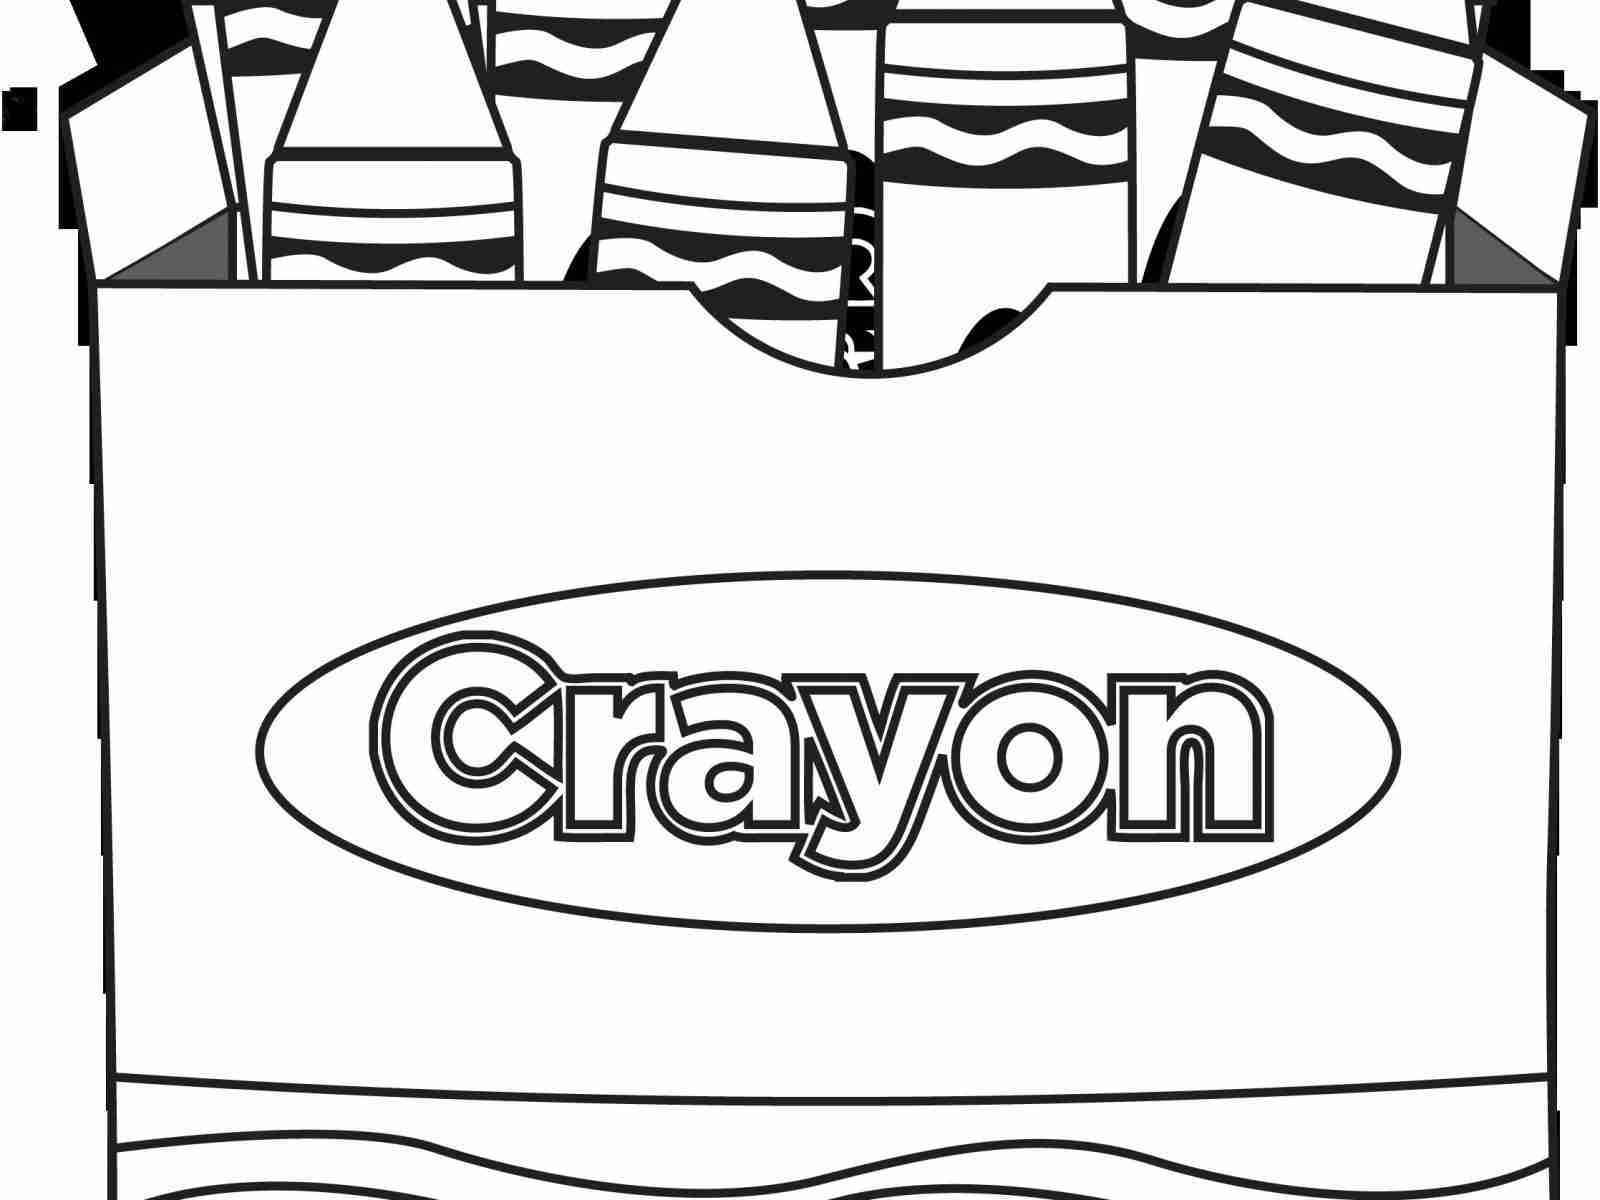 Crayon outline clipart svg freeuse stock Crayon outline clipart 6 » Clipart Station svg freeuse stock